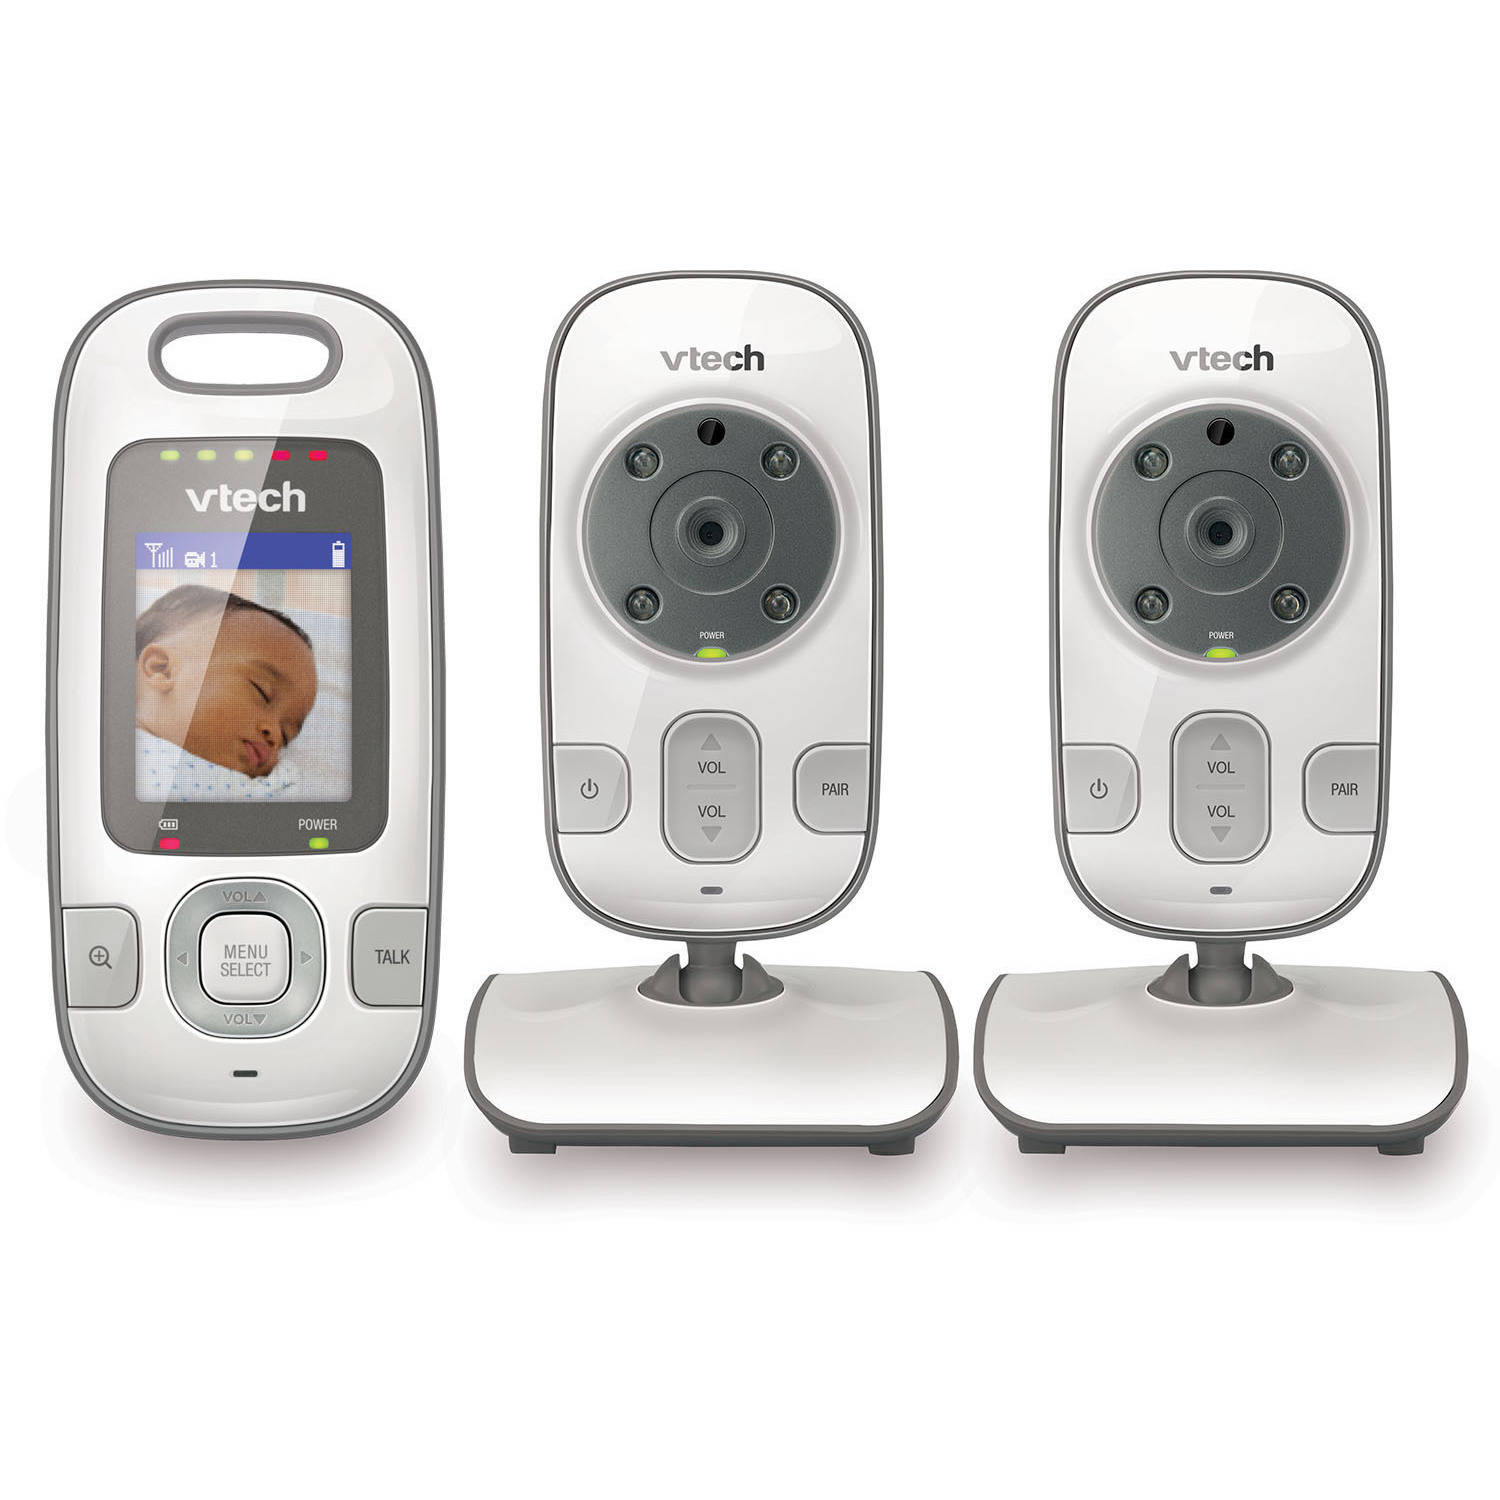 VTech VM312-2, Video Baby Monitor, IR Night Vision, 2 Cameras